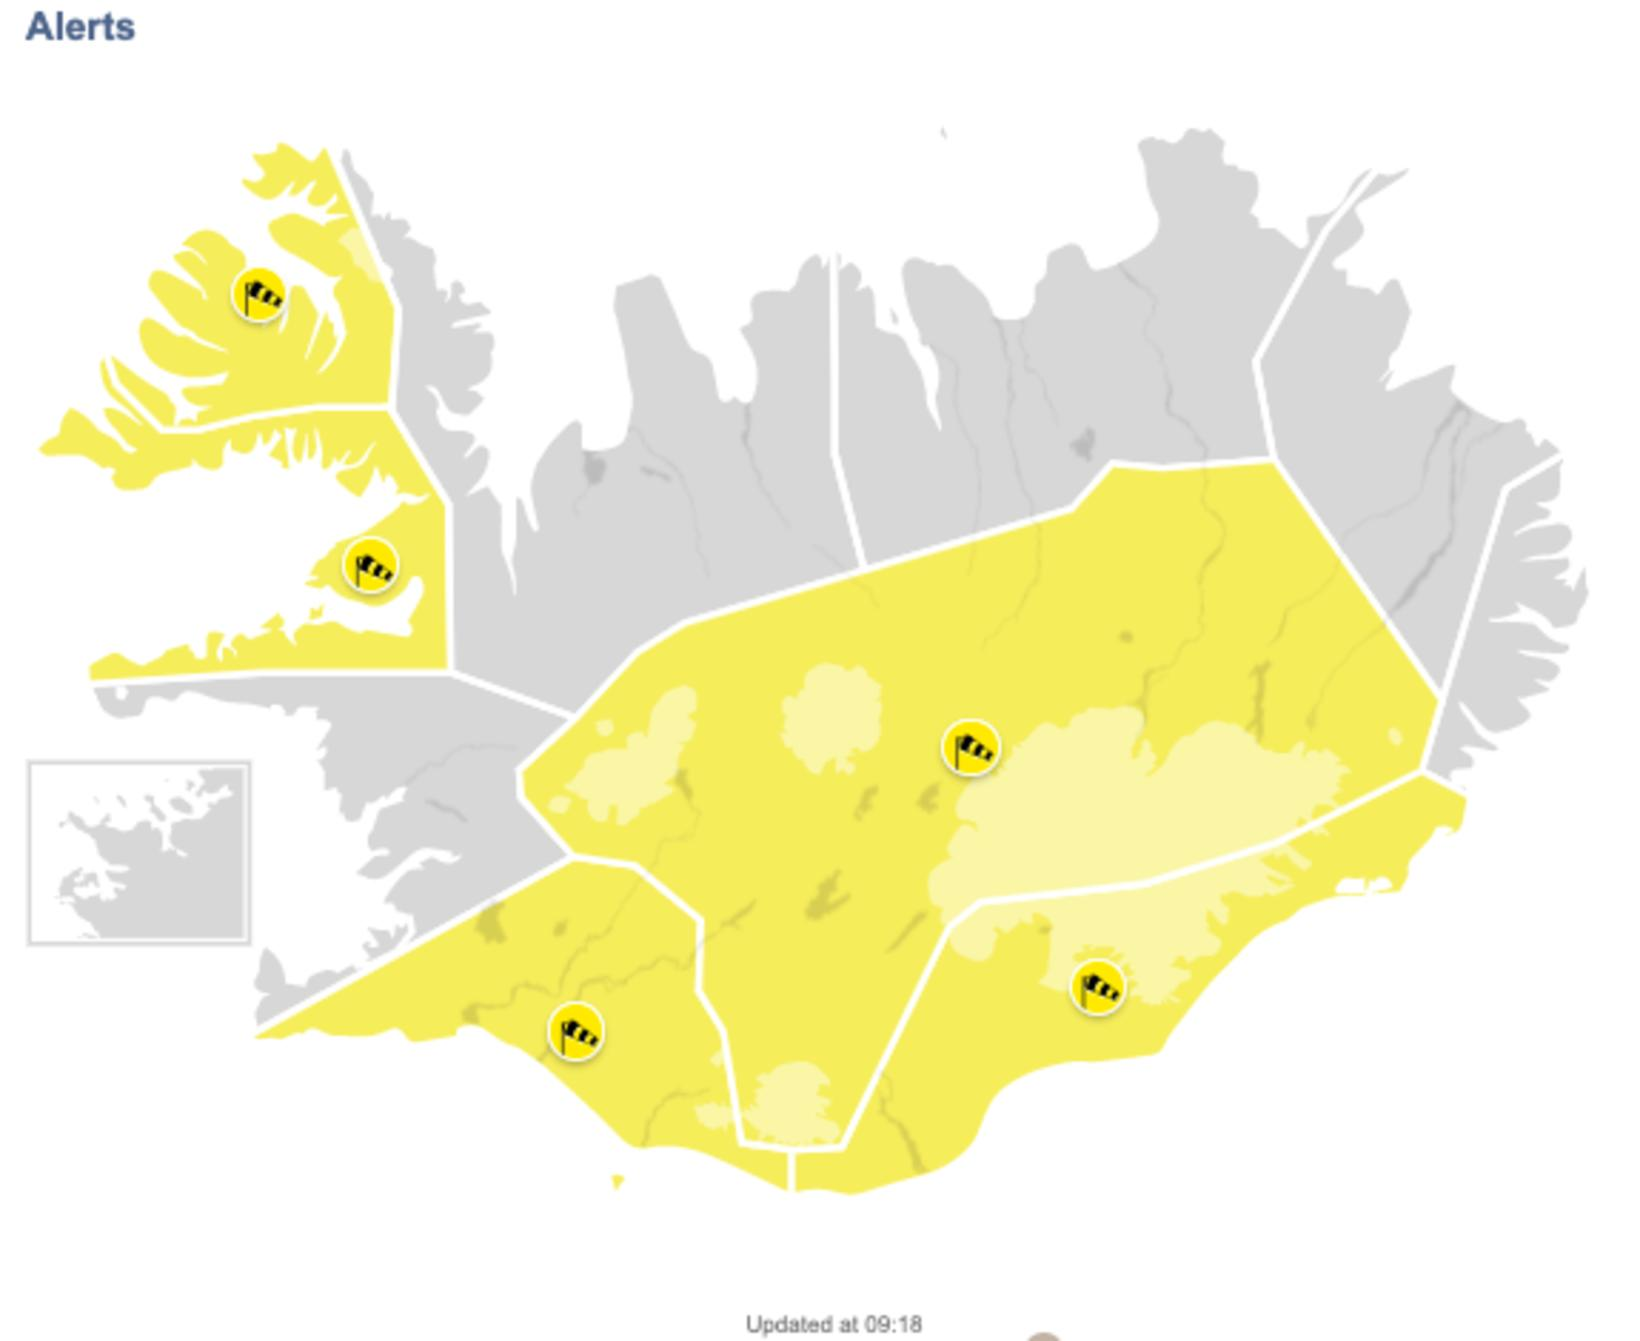 The affected areas.